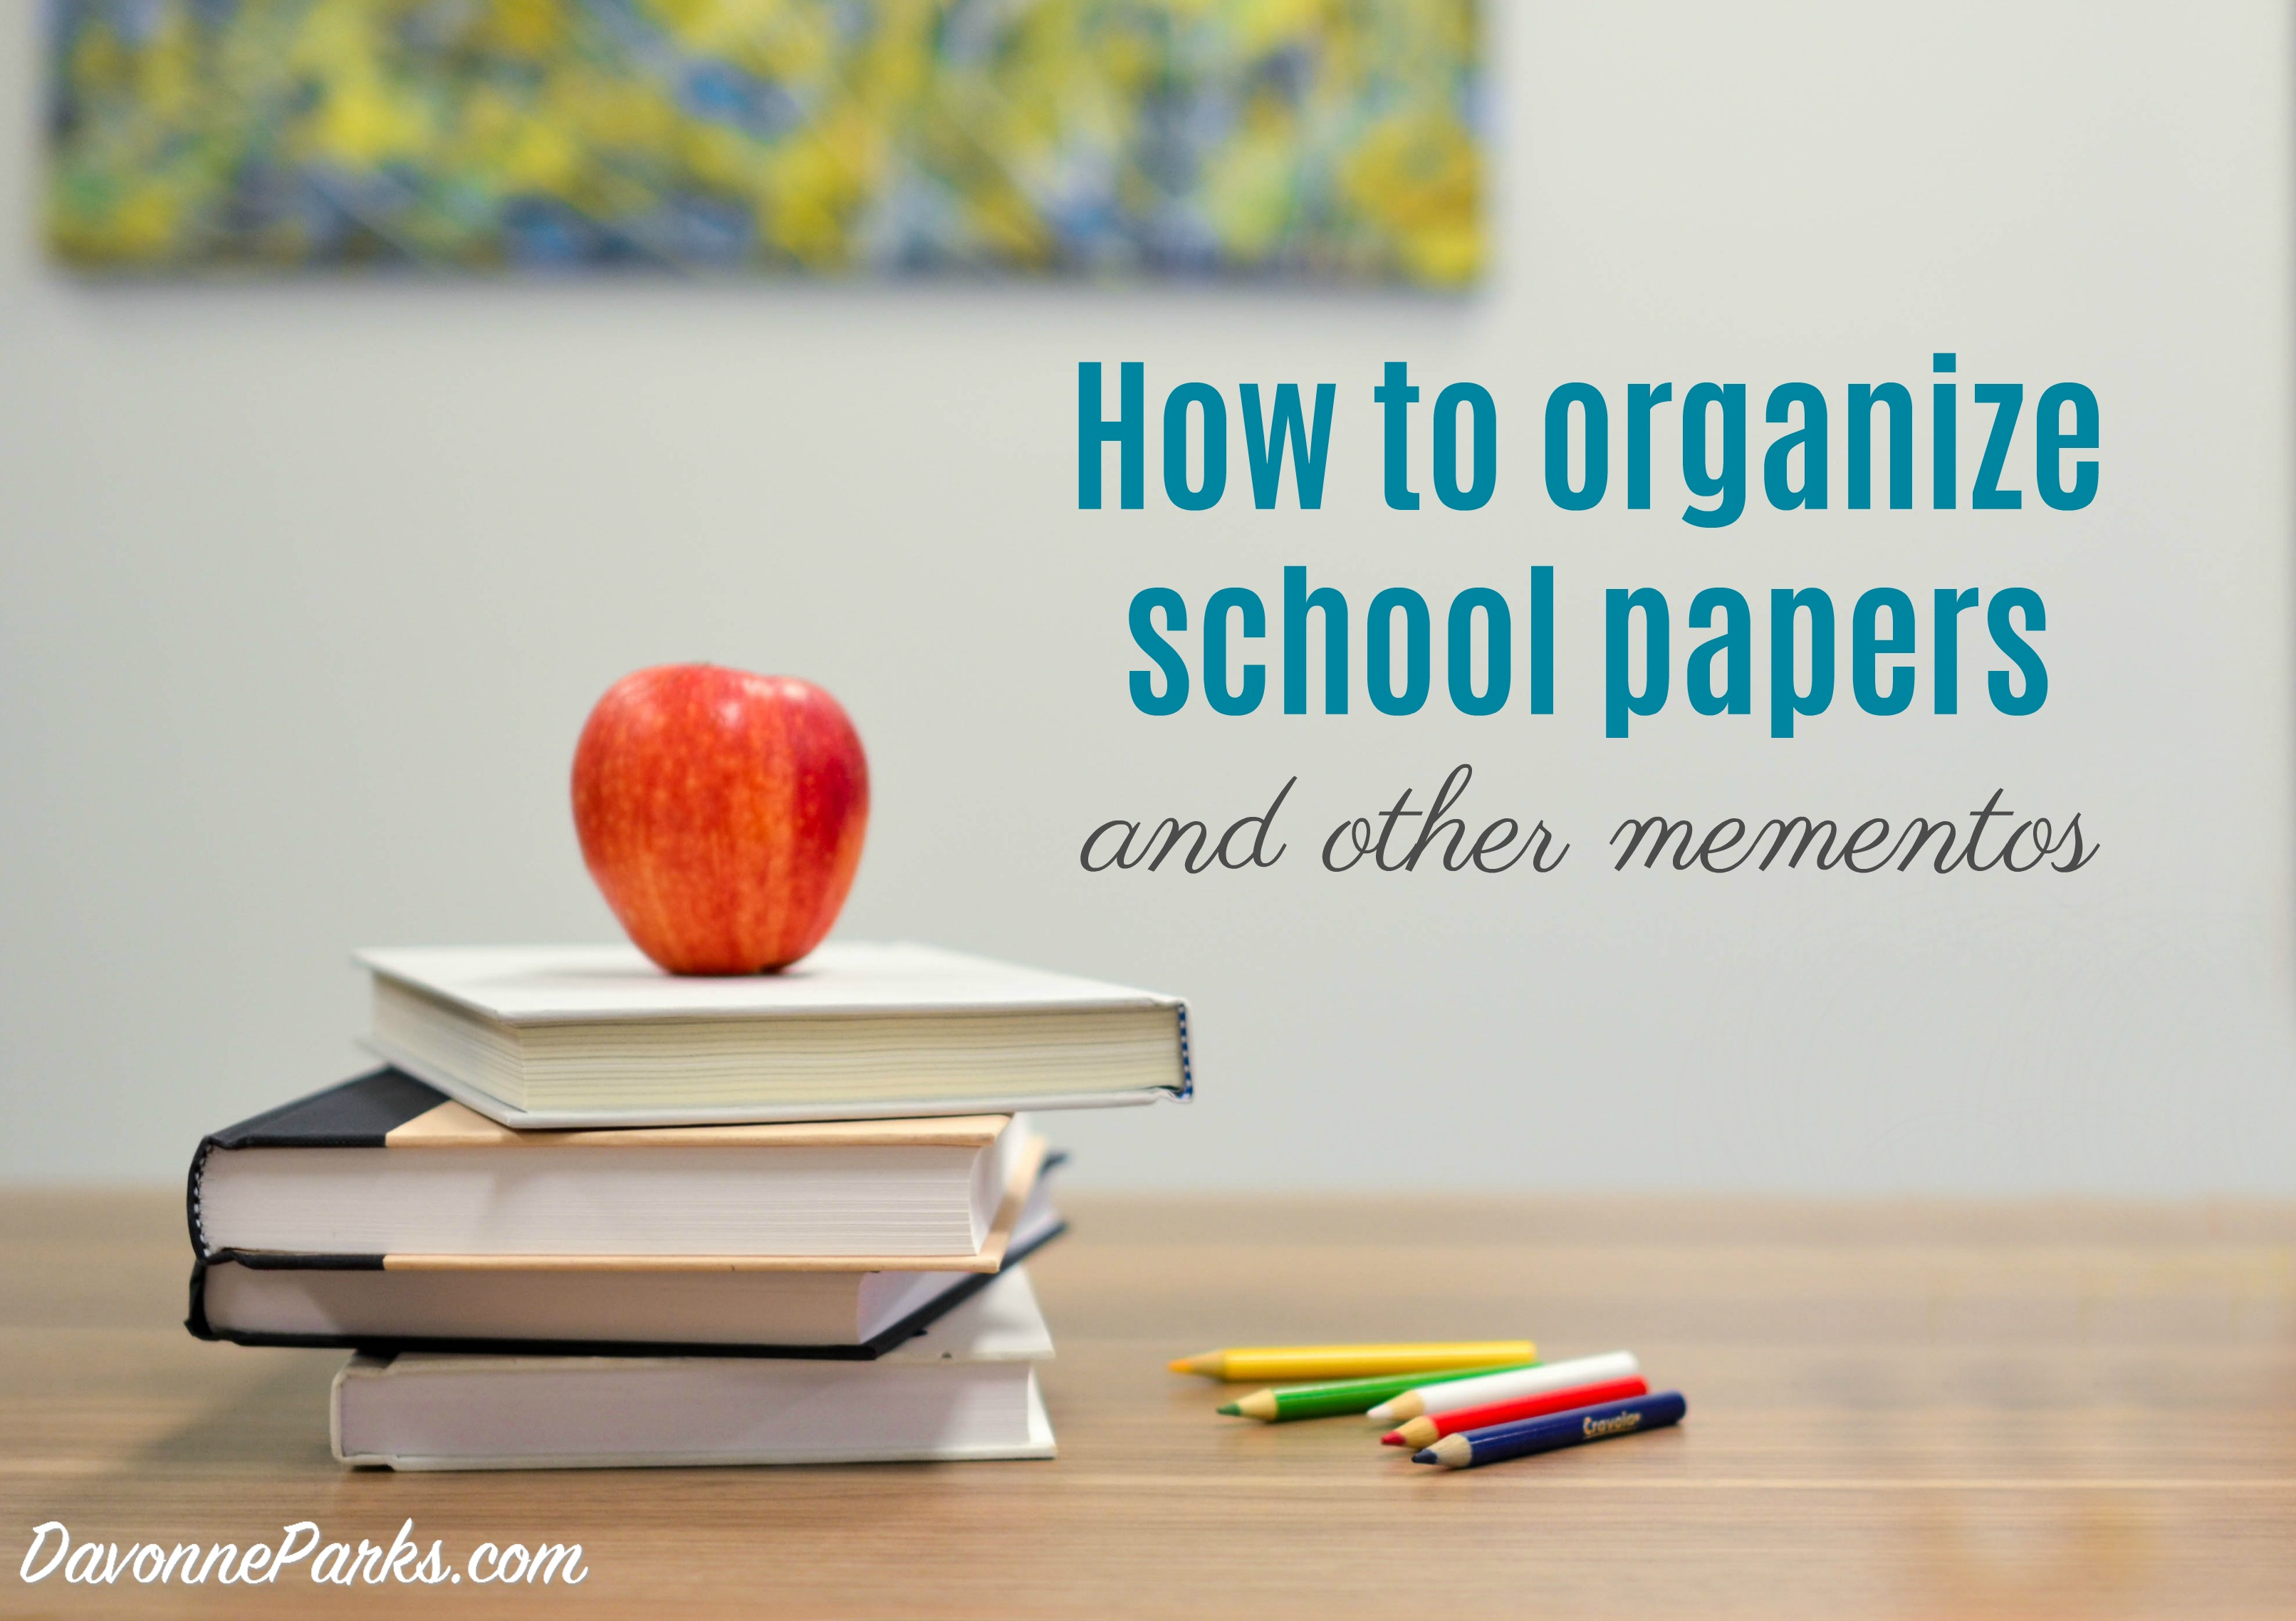 How to Organize School Papers and Other Mementos